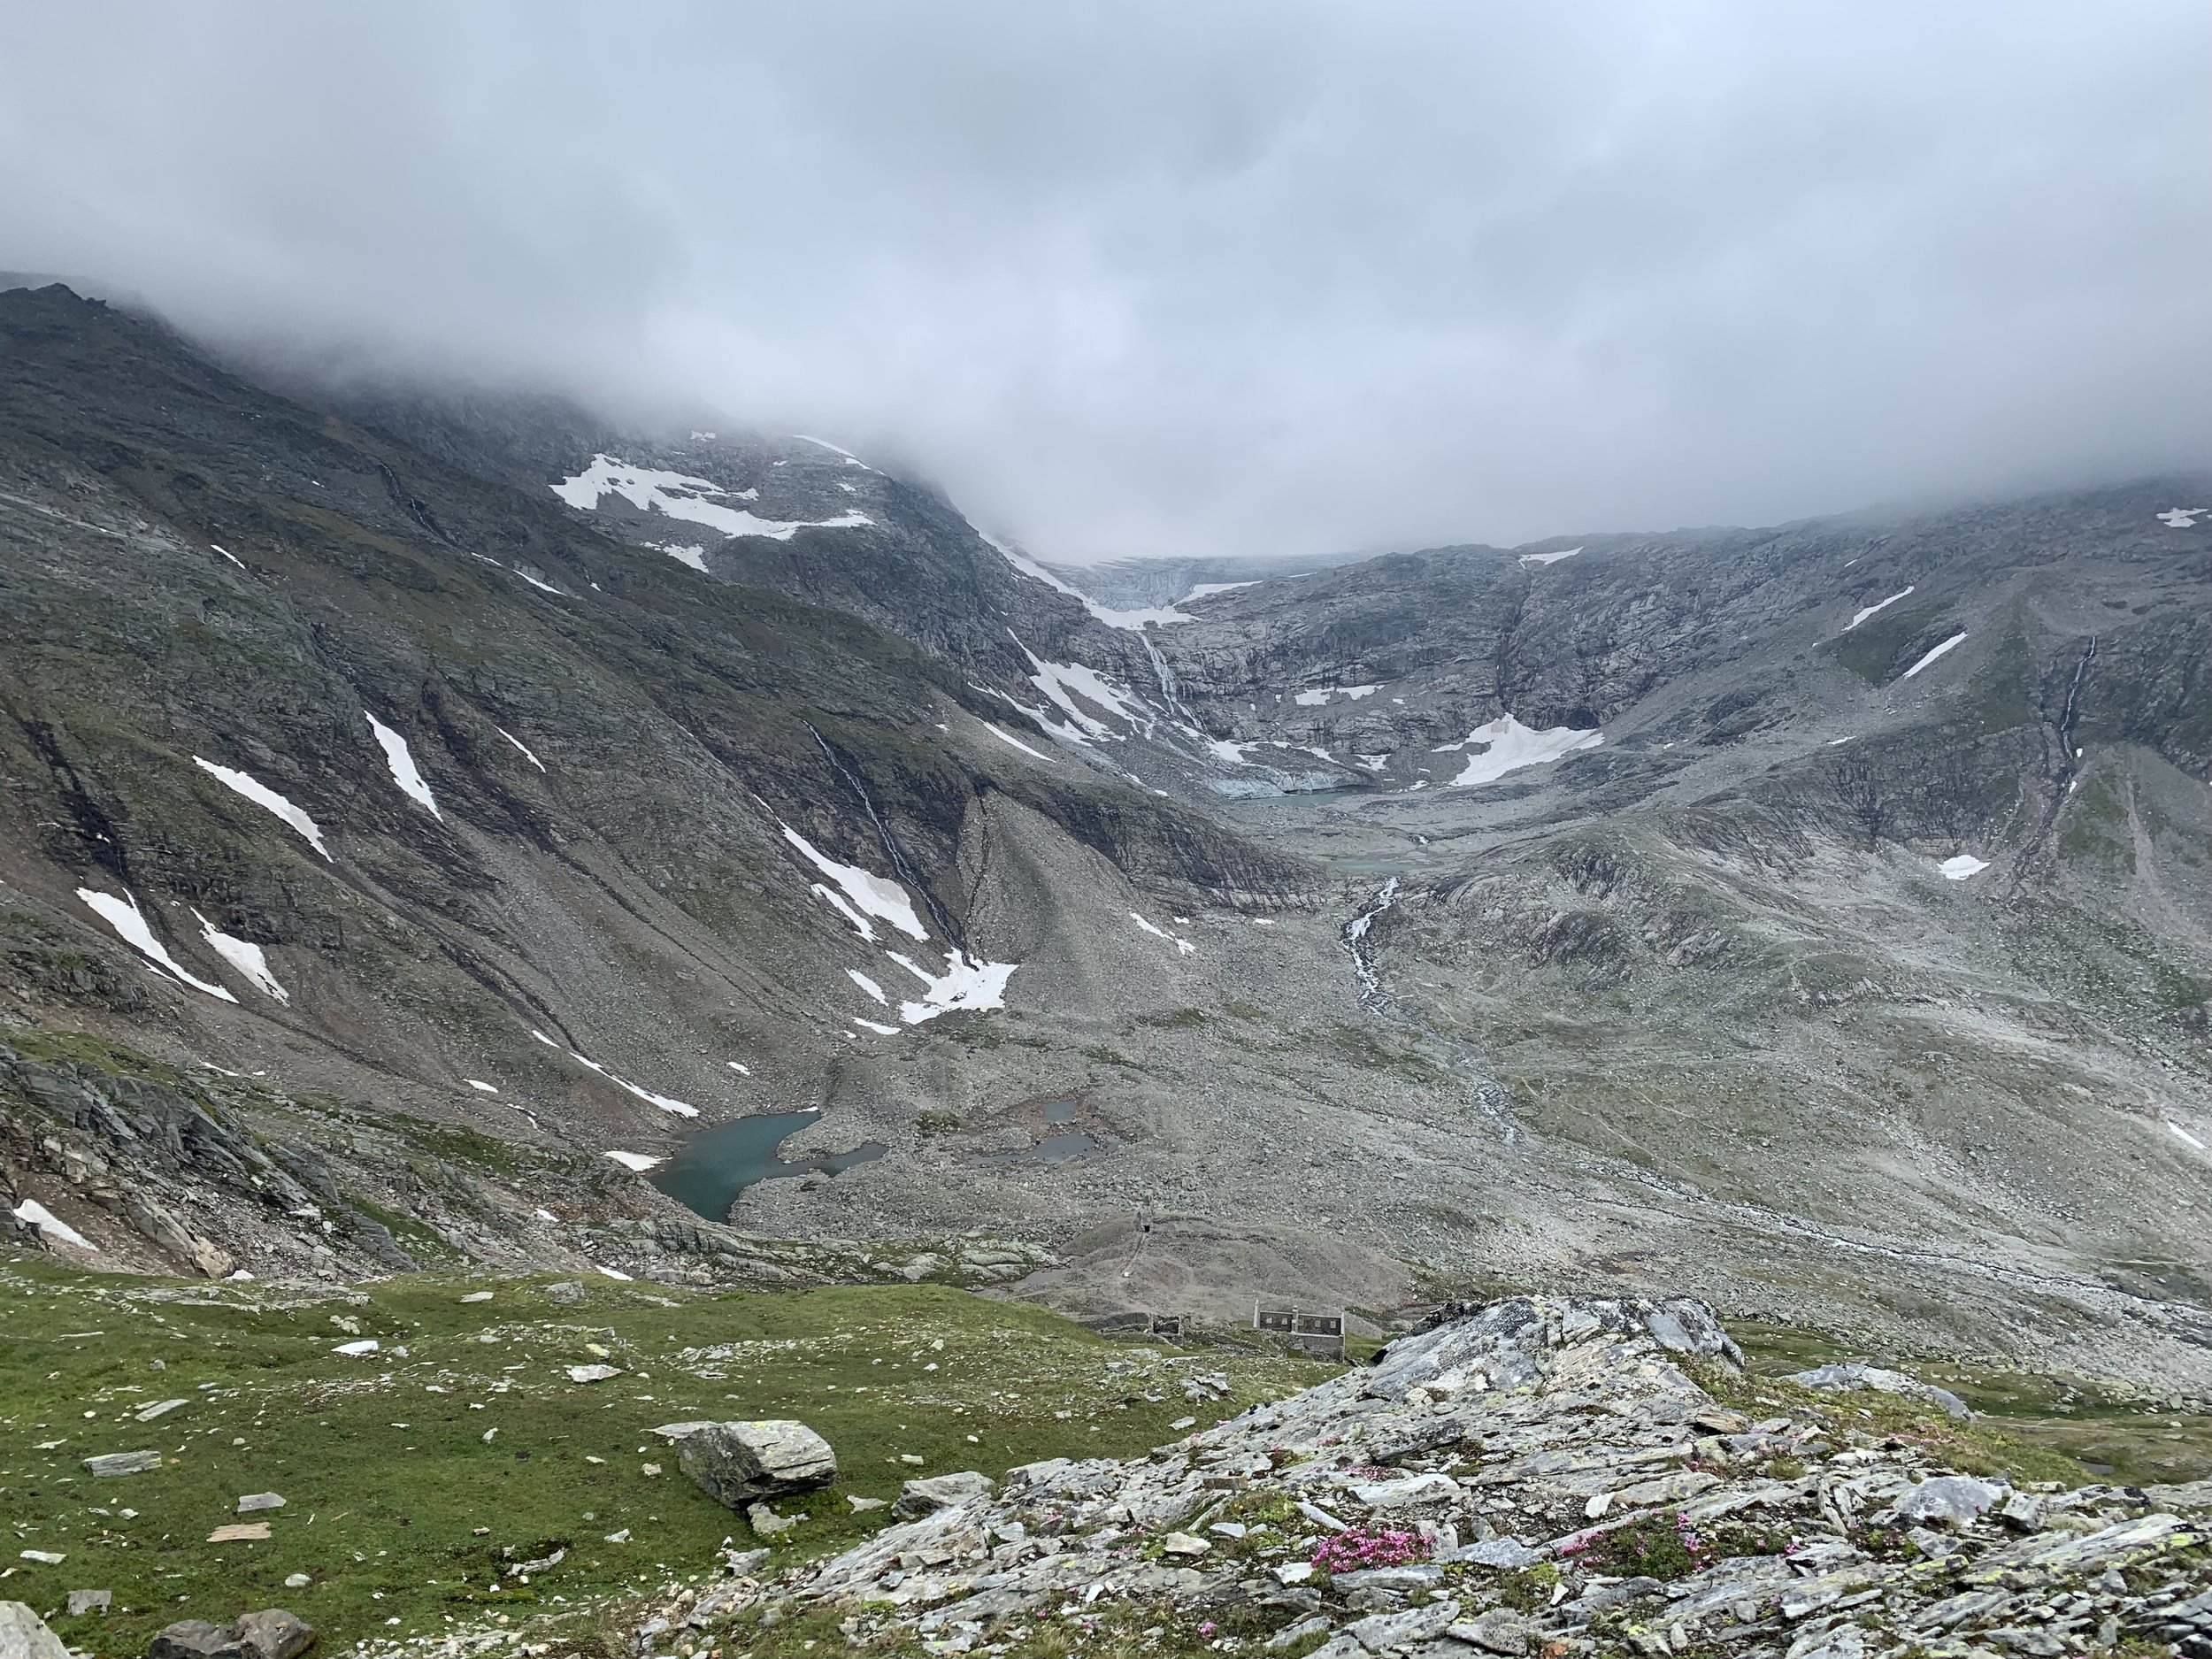 View towards the valley